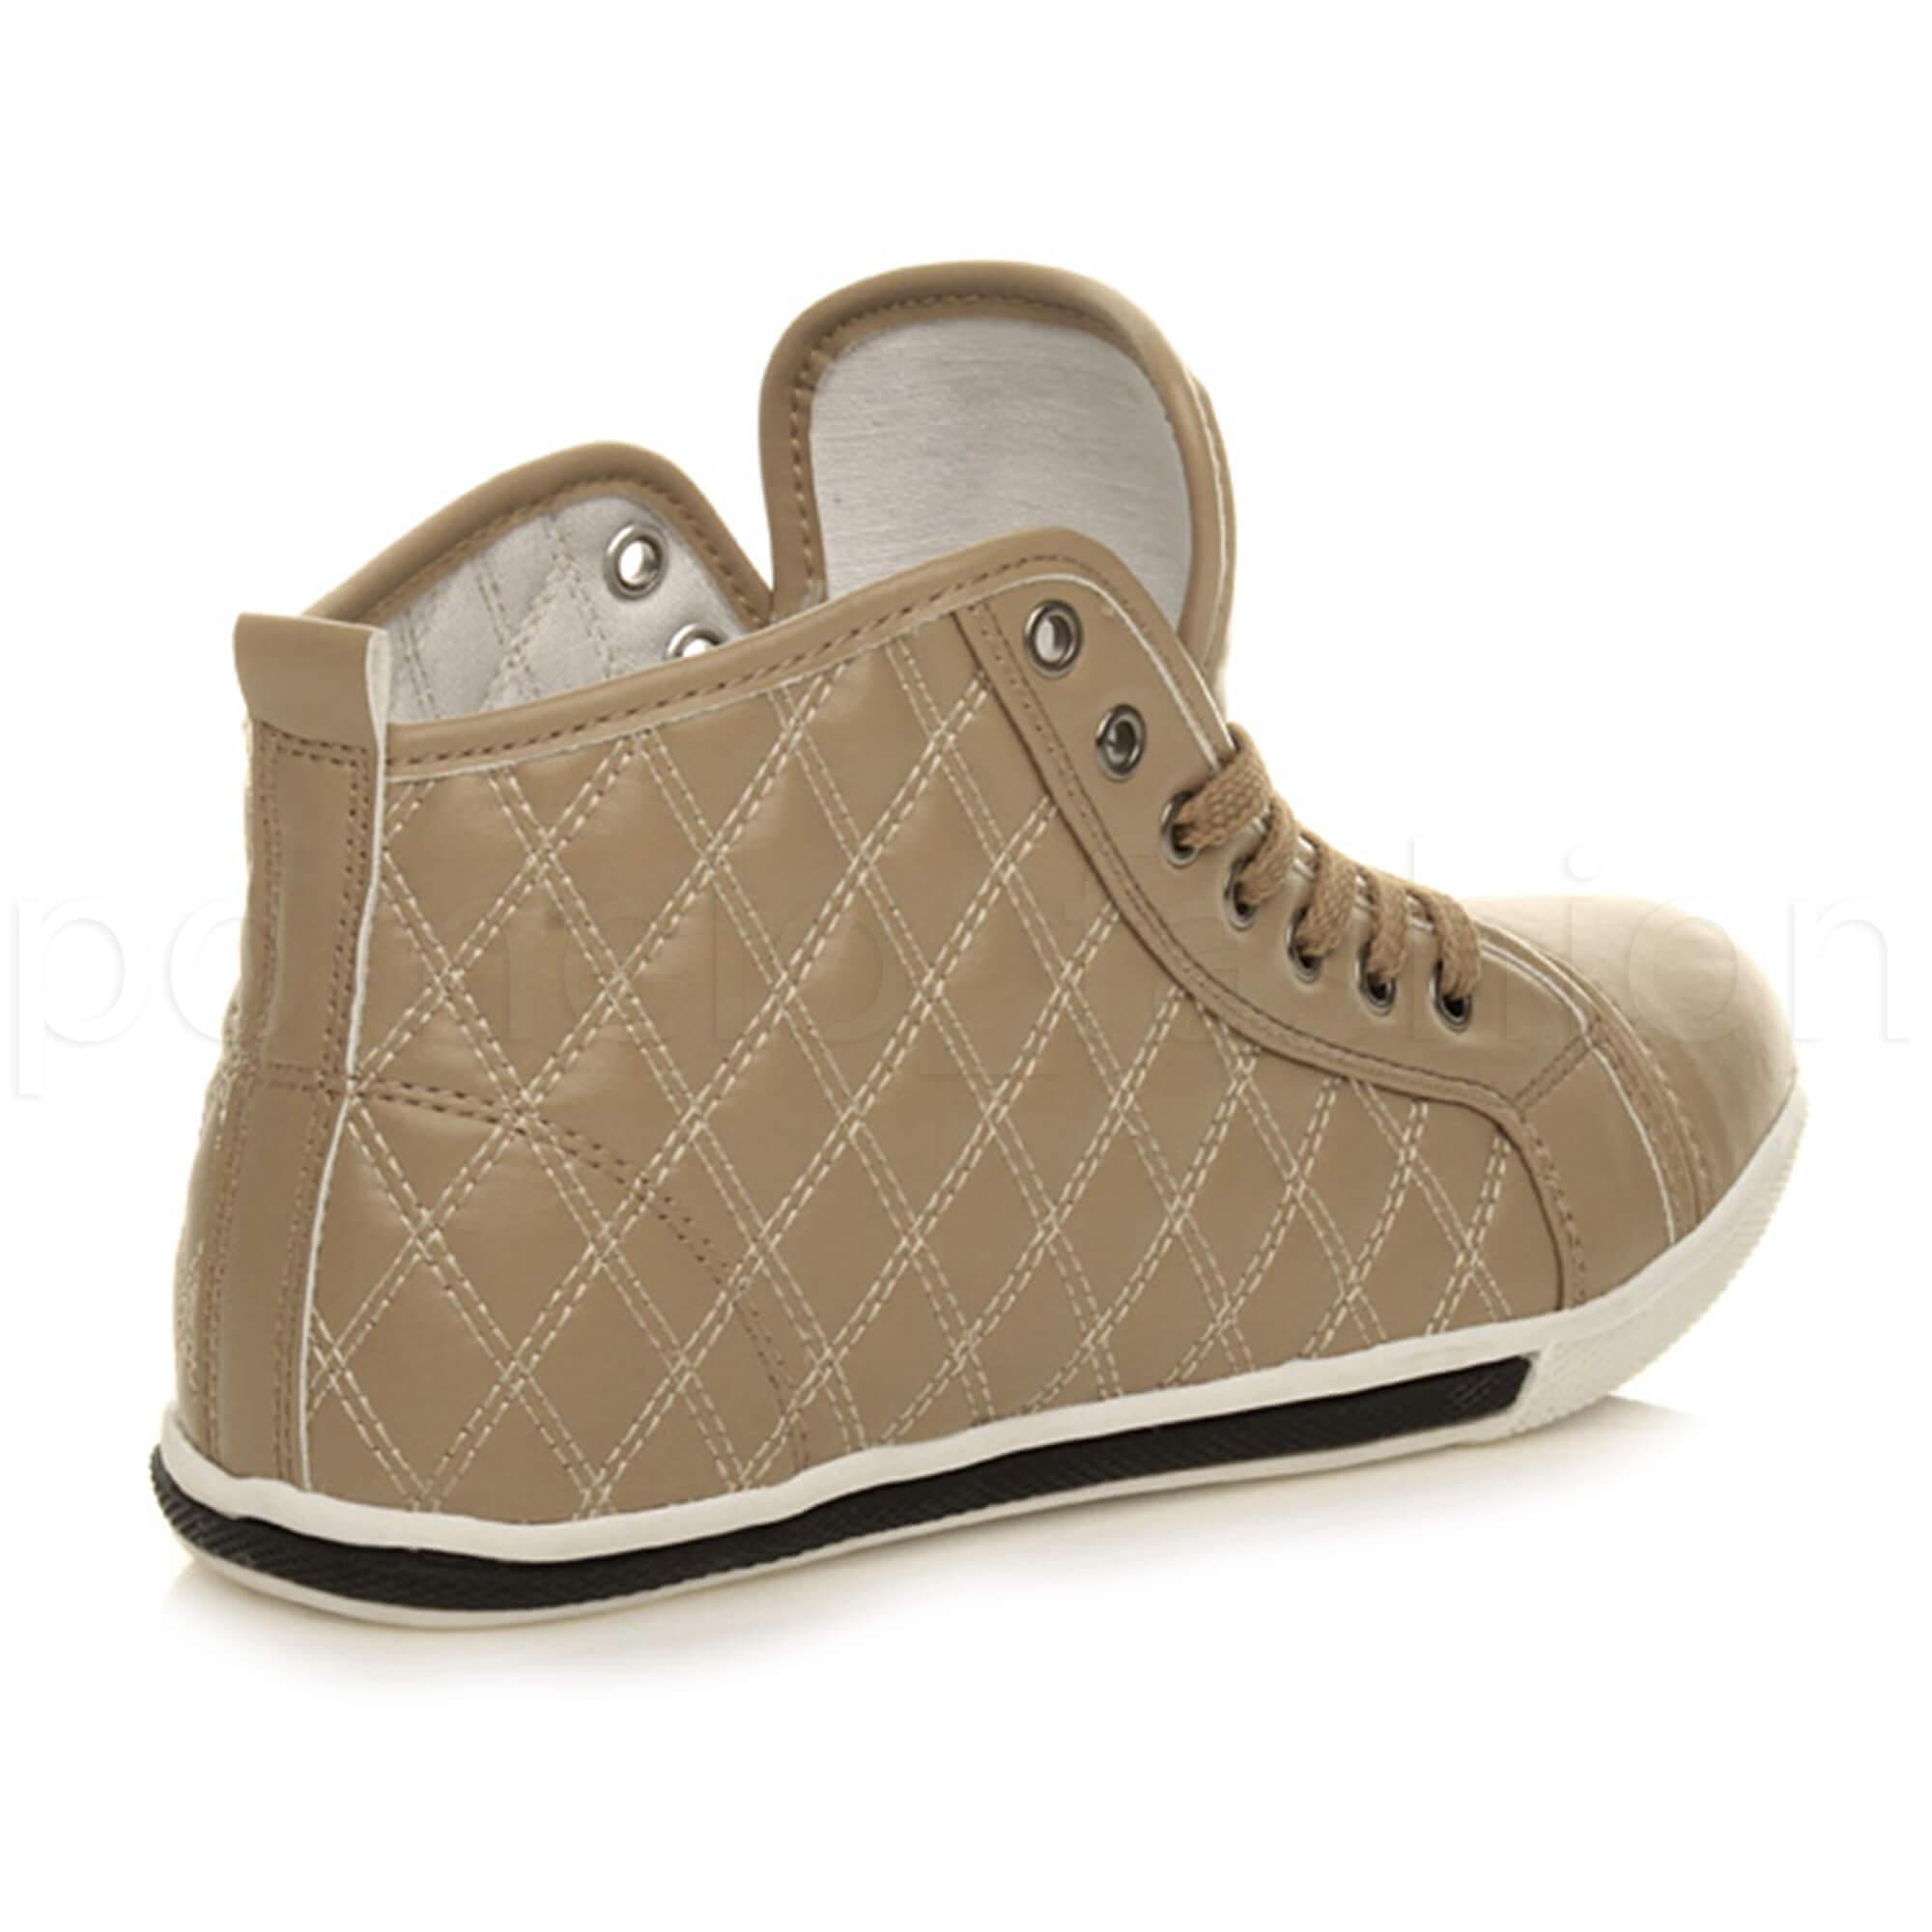 WOMENS LADIES FLAT TRAINERS QUILTED HI HIGH TOP PUMPS ANKLE BOOTS SHOES SIZE